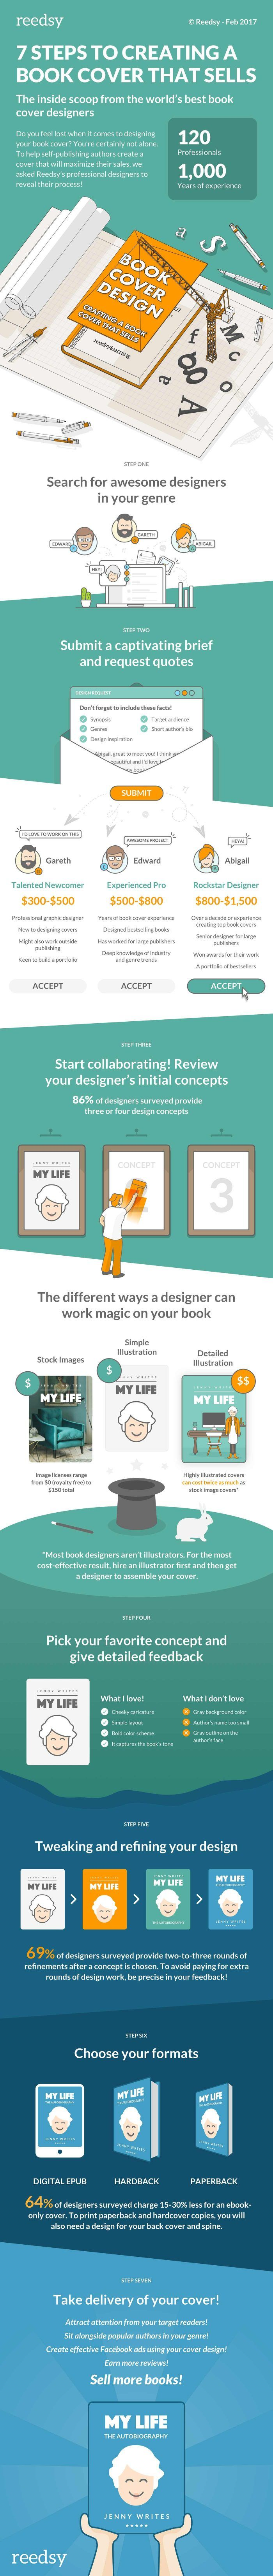 7 steps to creating a book cover that sells. #writing #books #publishing